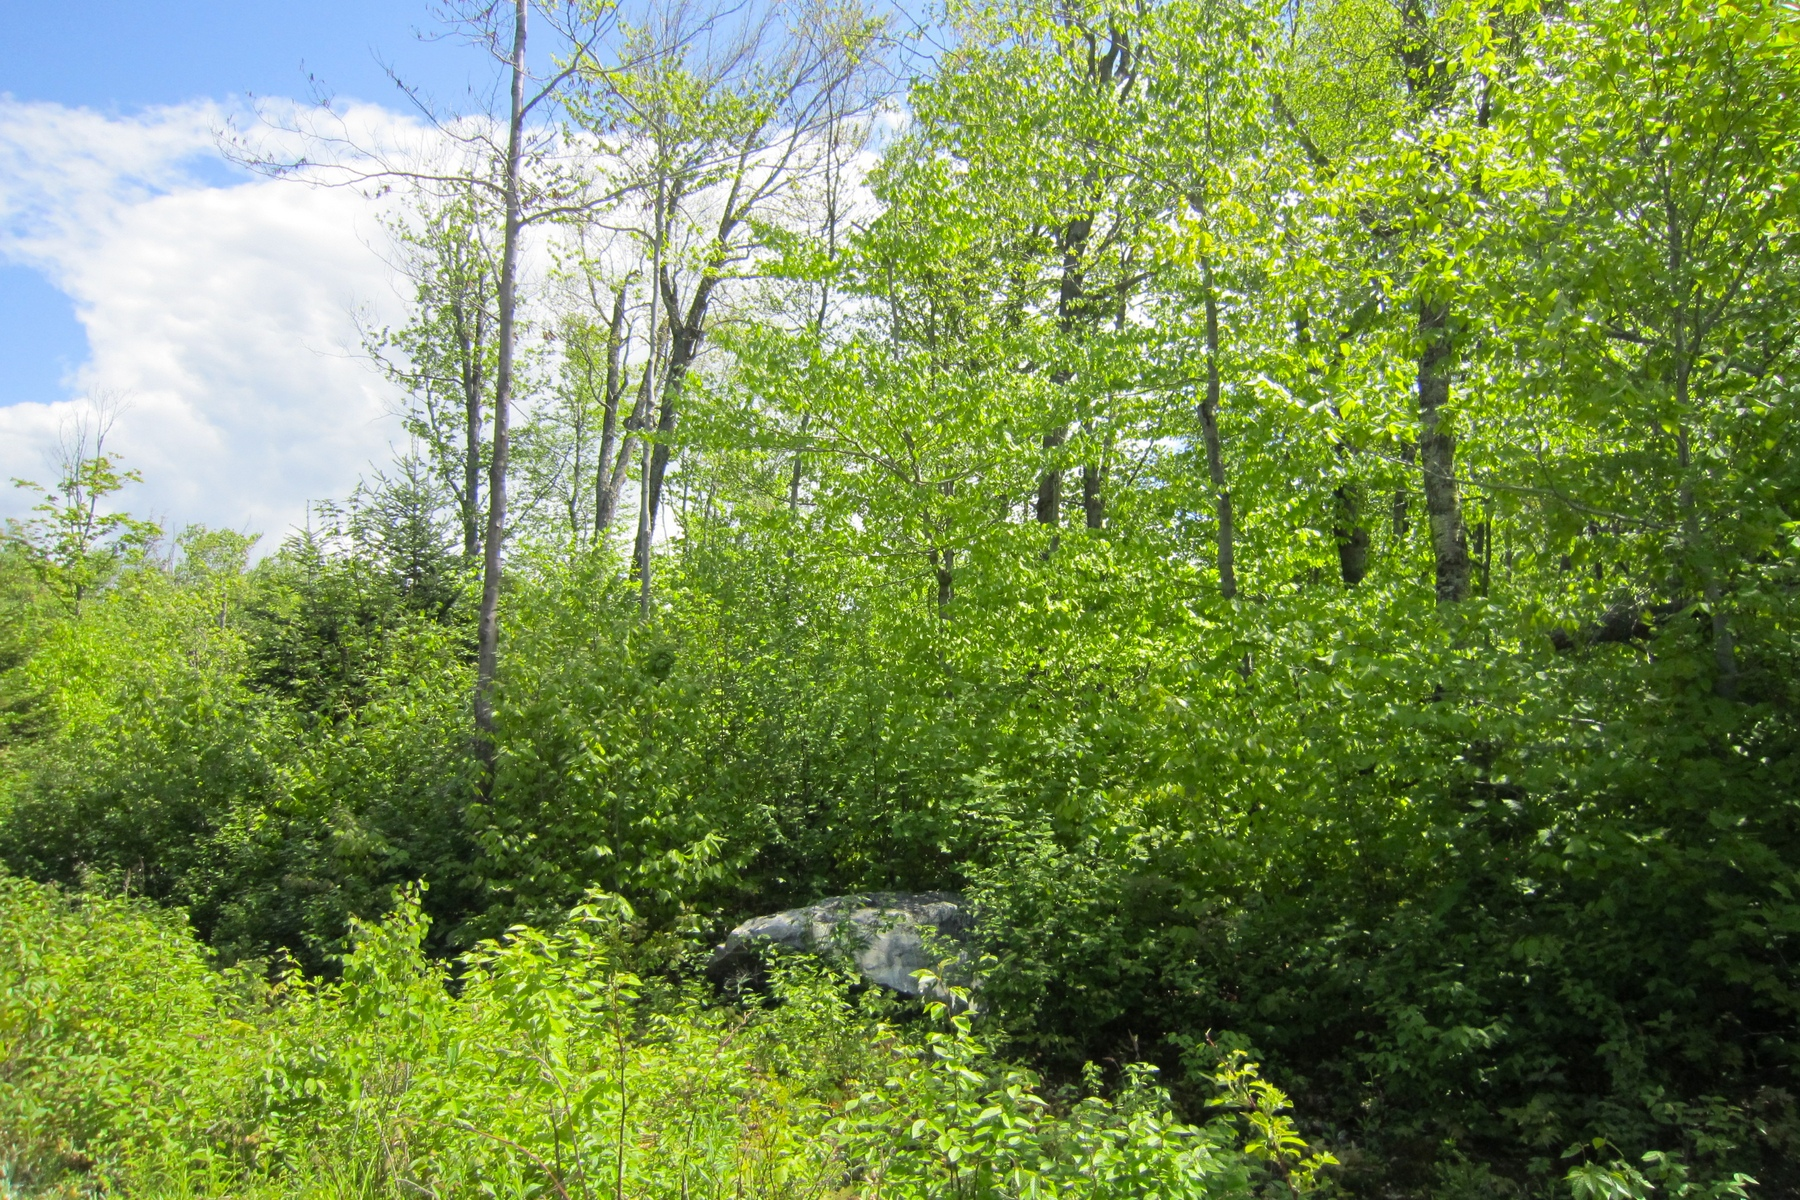 Land for Sale at Lots 2-6 Candeleros Court, Ludlow Lots 2-6 Candeleros Ct Ludlow, Vermont 05149 United States